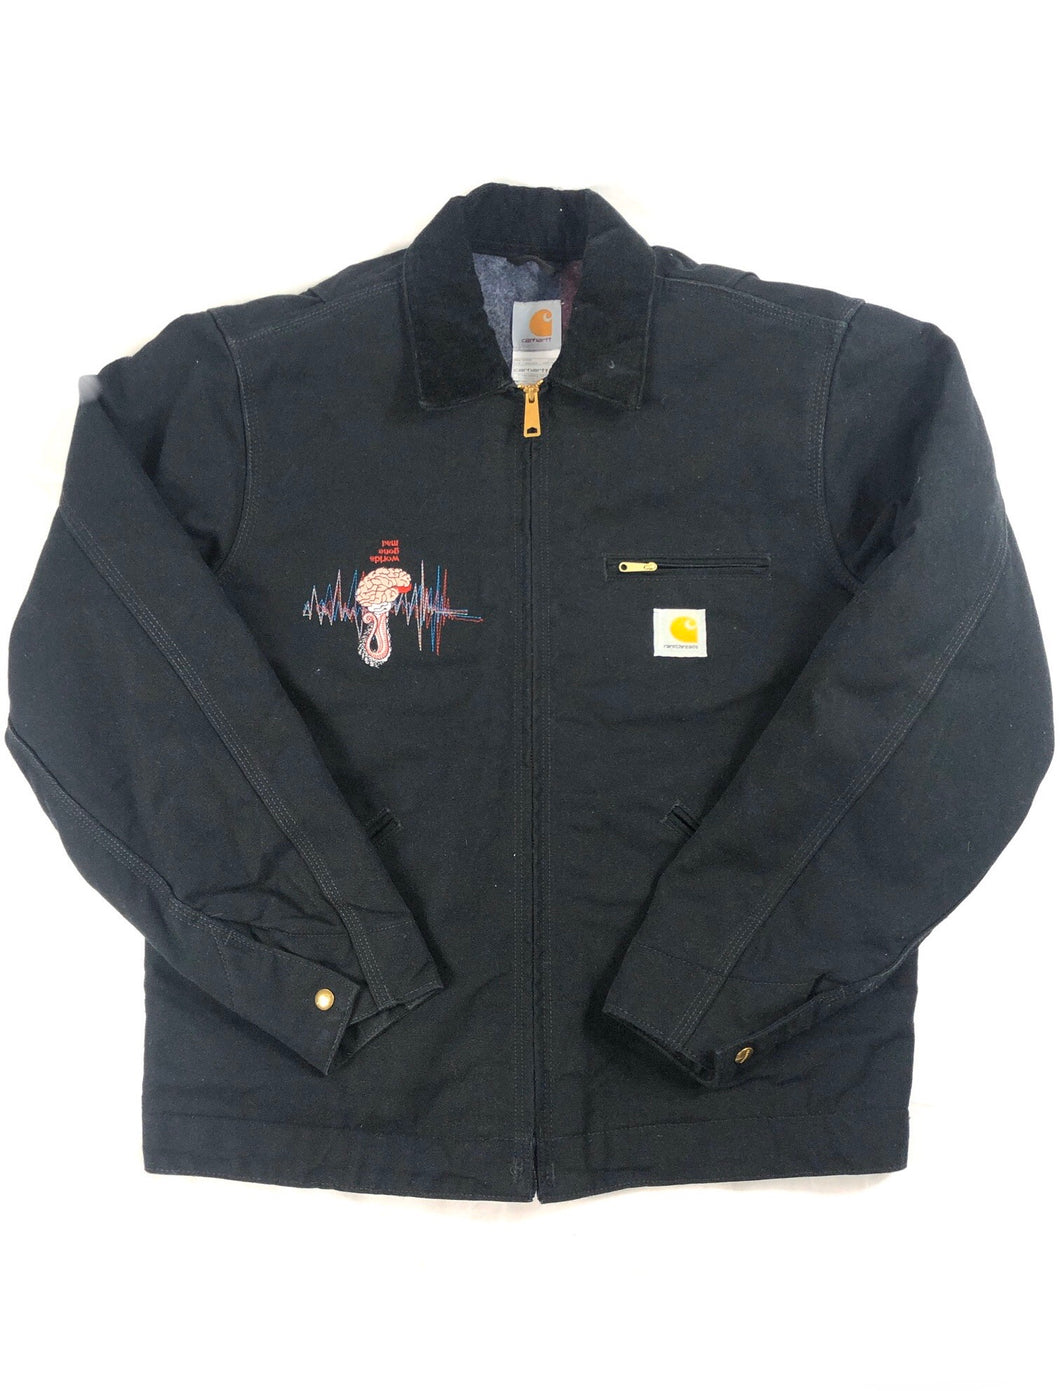 "Carhartt ""World Gone Mad"" Detroit Jacket"